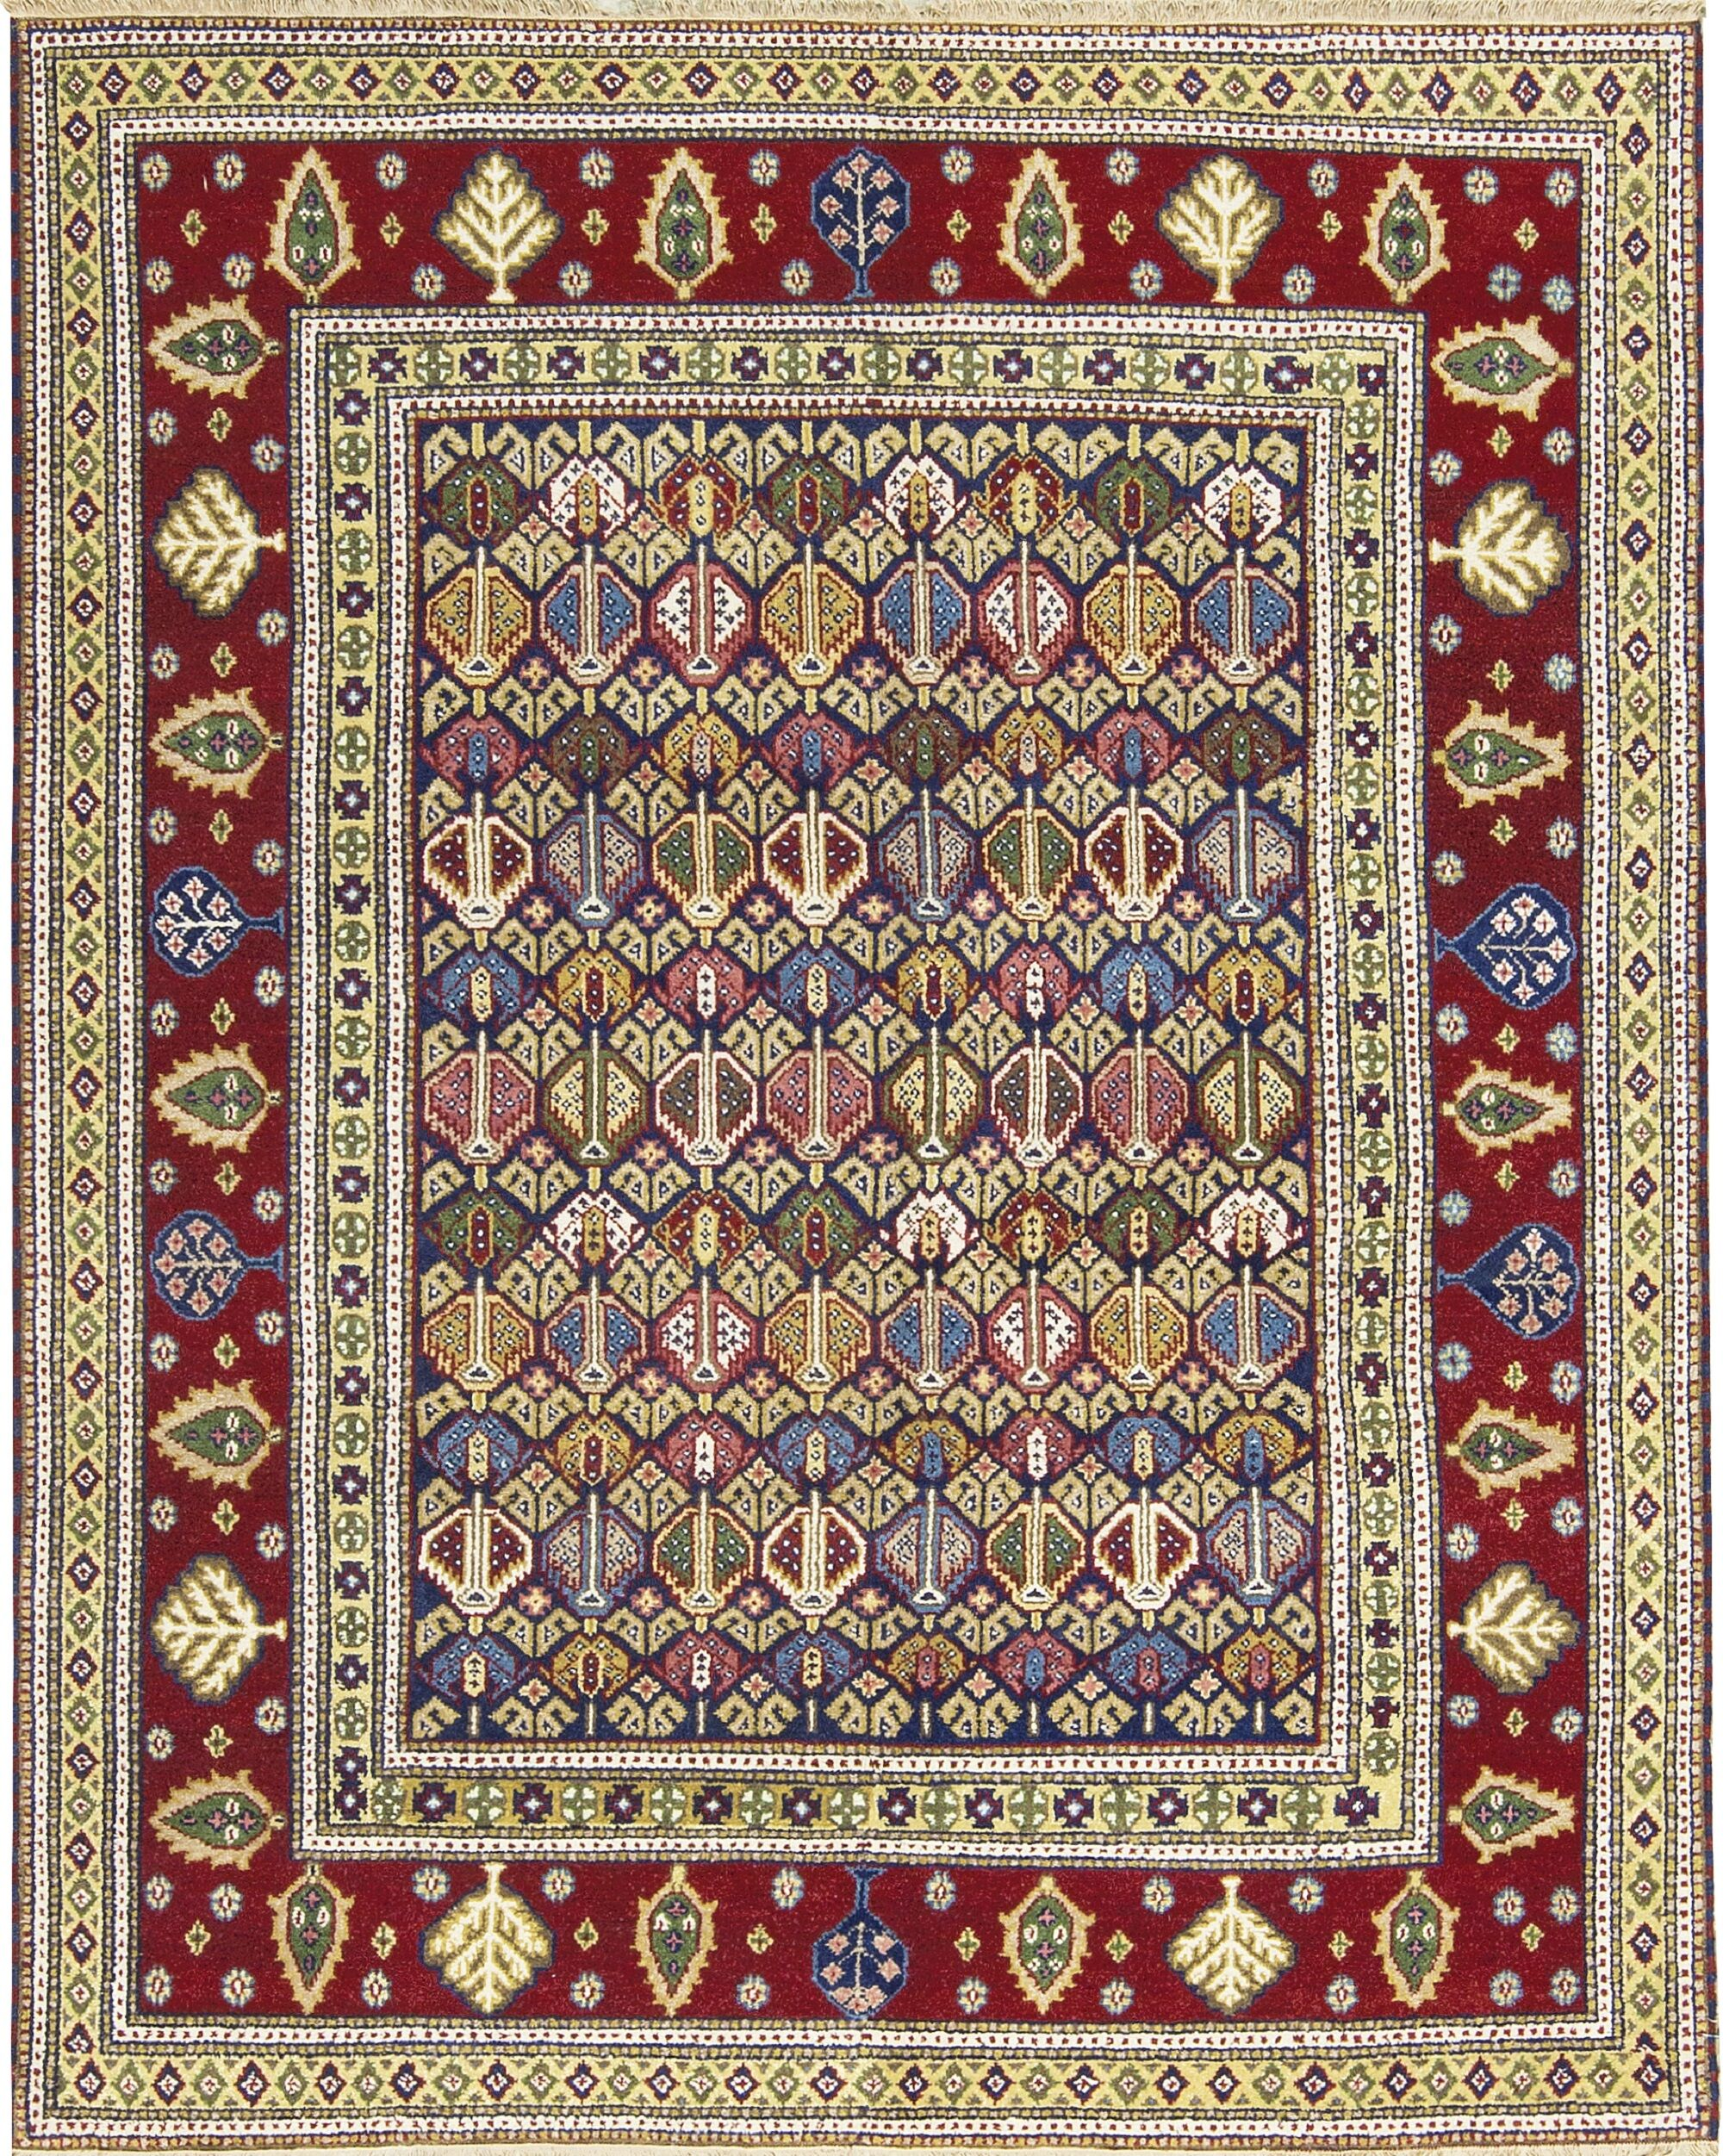 One-of-a-Kind Indo Hand-Knotted Wool Blue/Red Area Rug